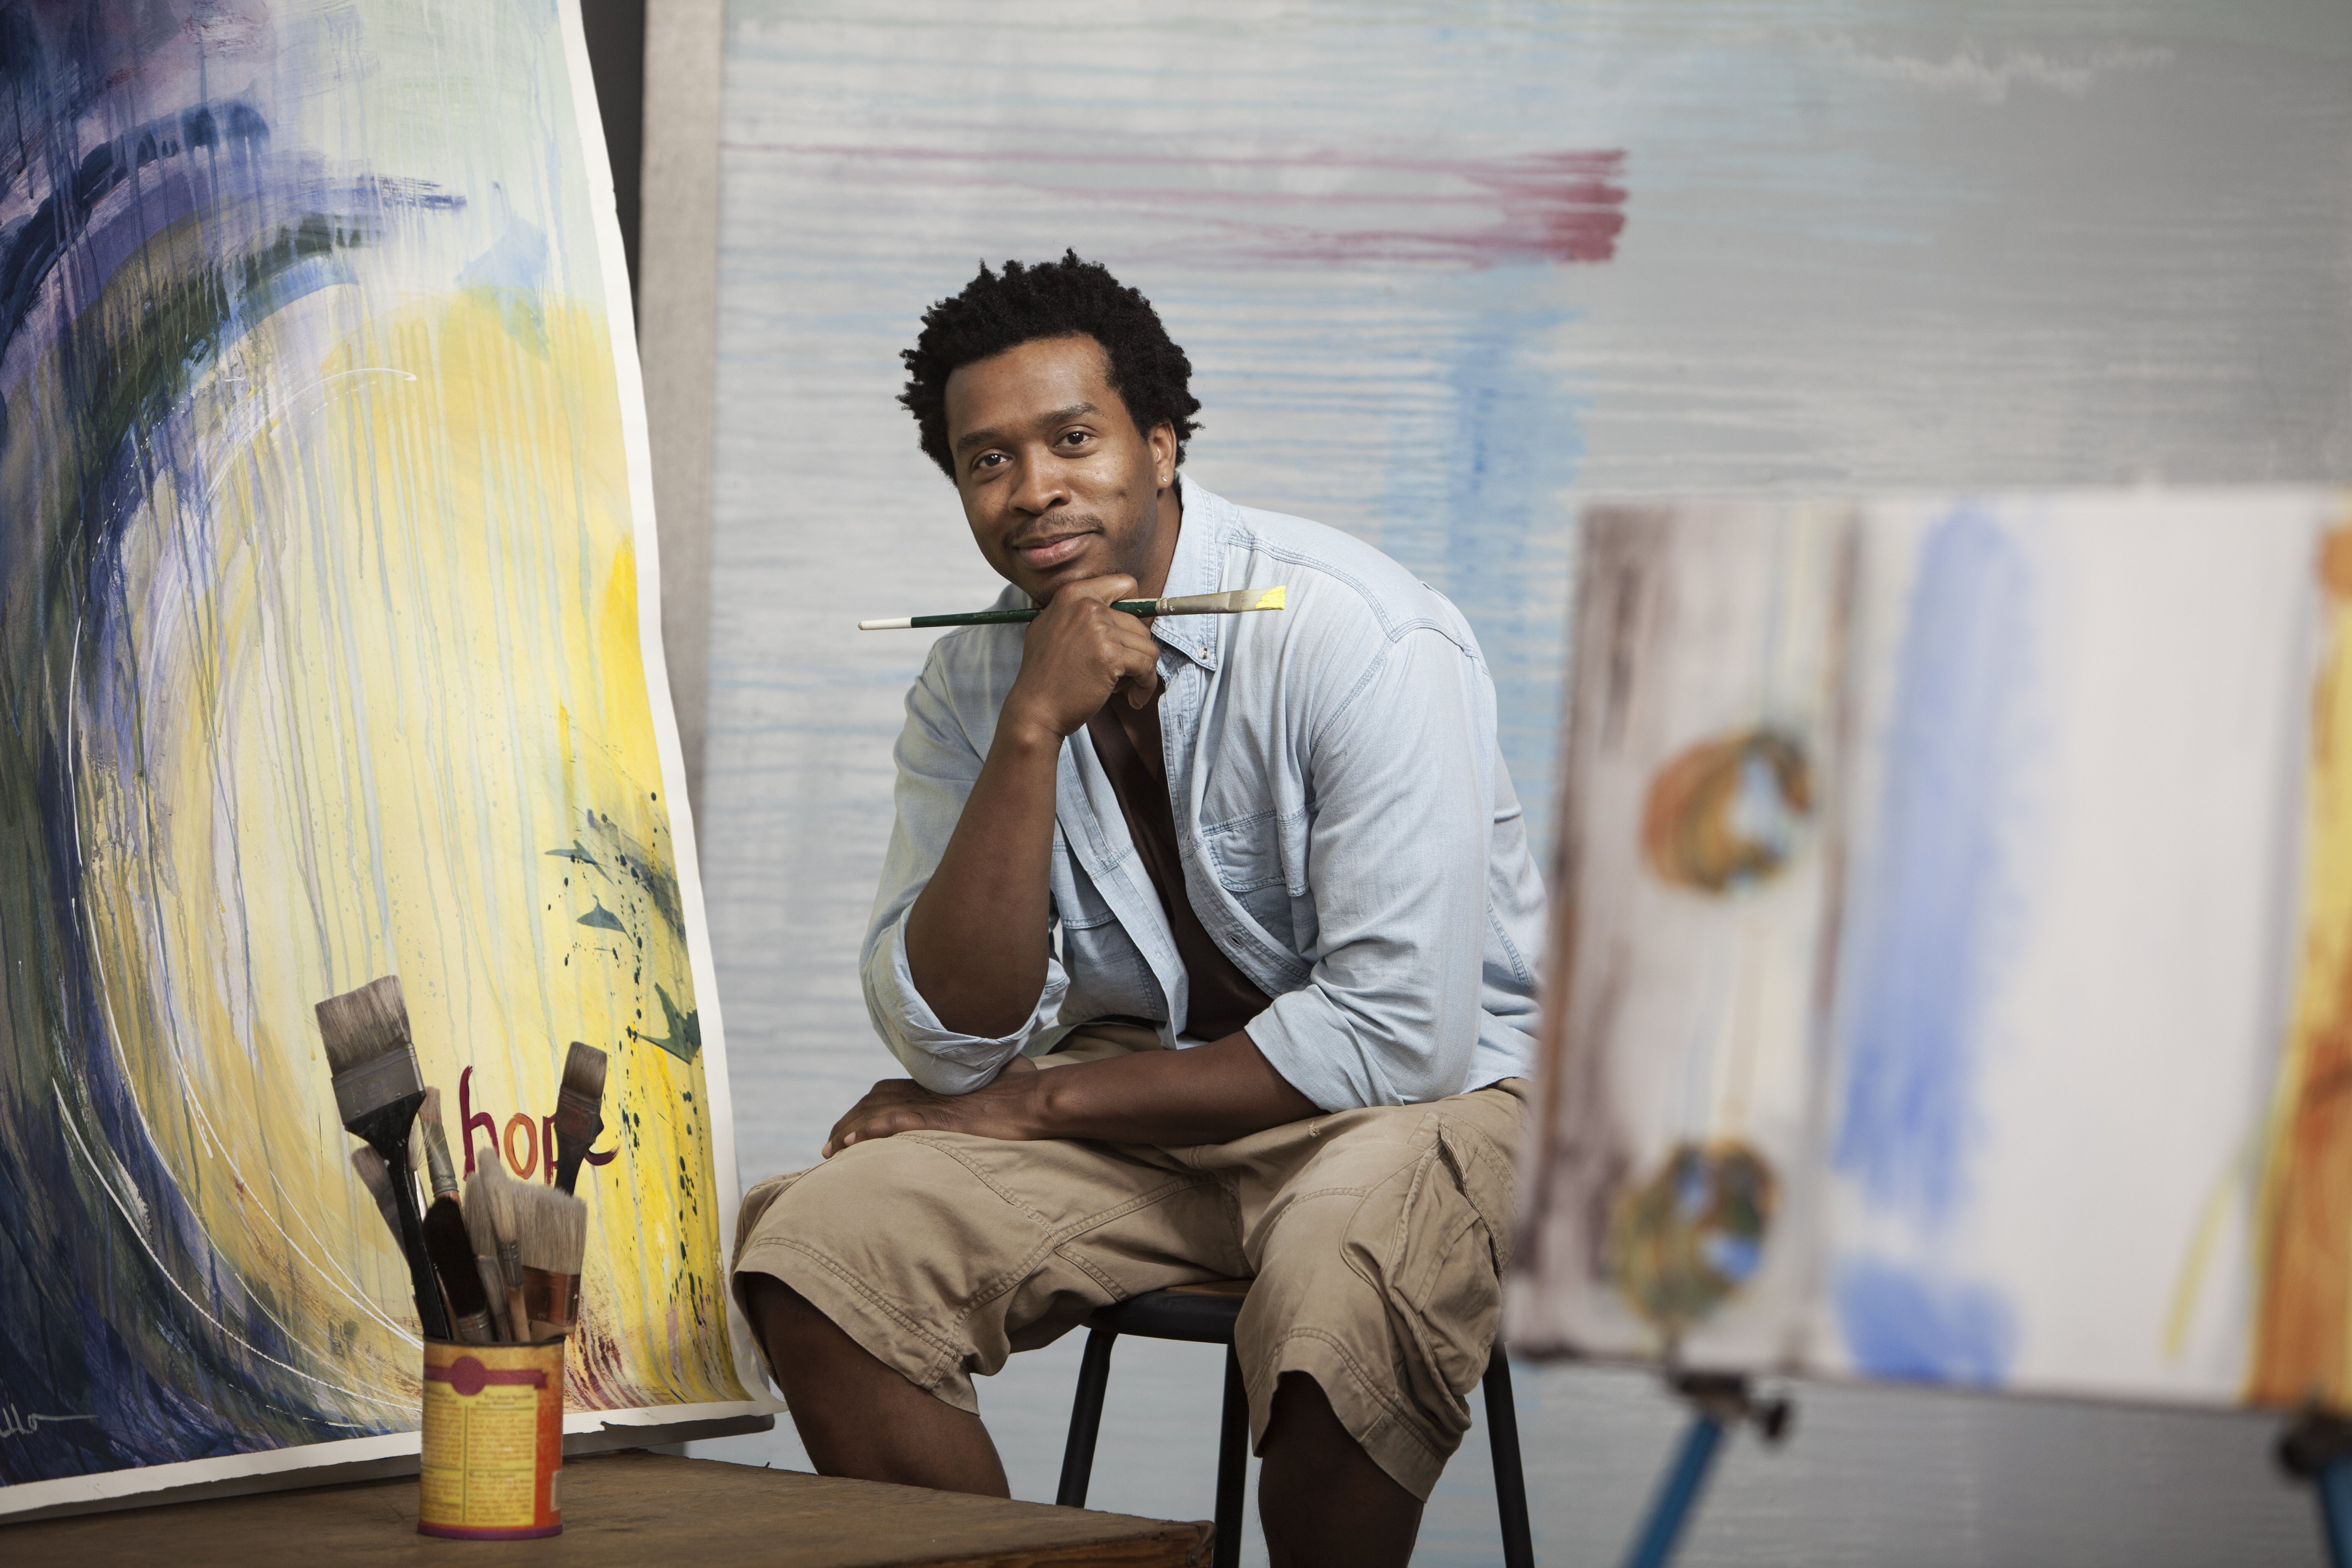 A black Artist sitting in studio as he poses for a photo | Photo: Getty Images